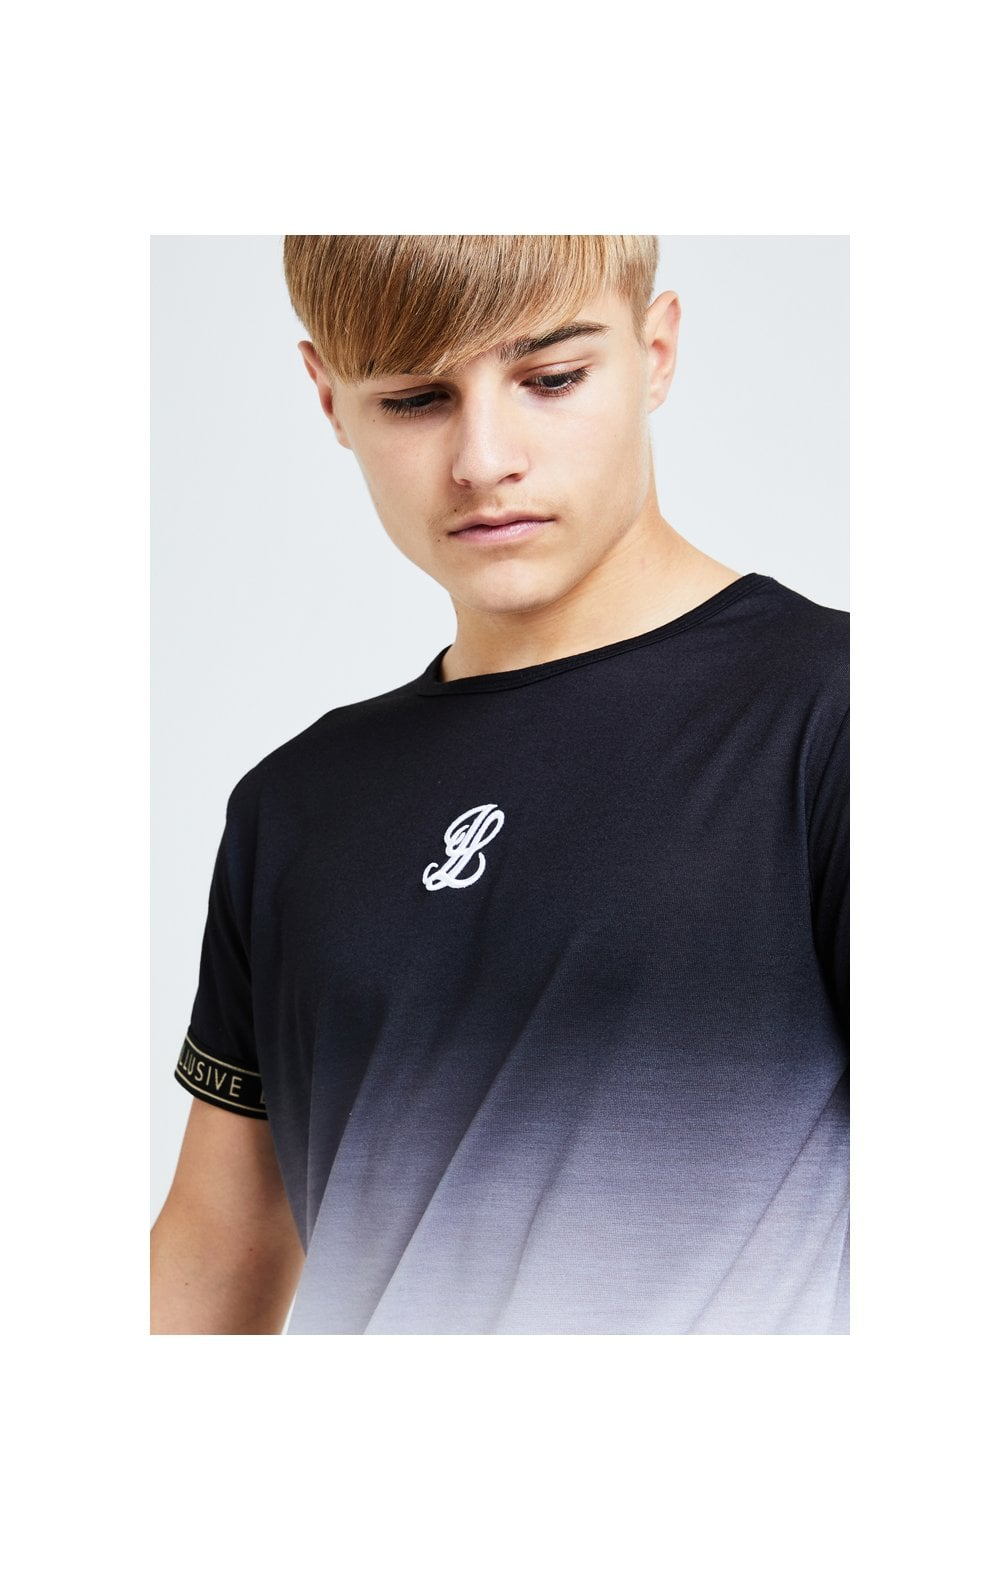 Illusive London Diverge Fade Tech Tee - Black Gold & White